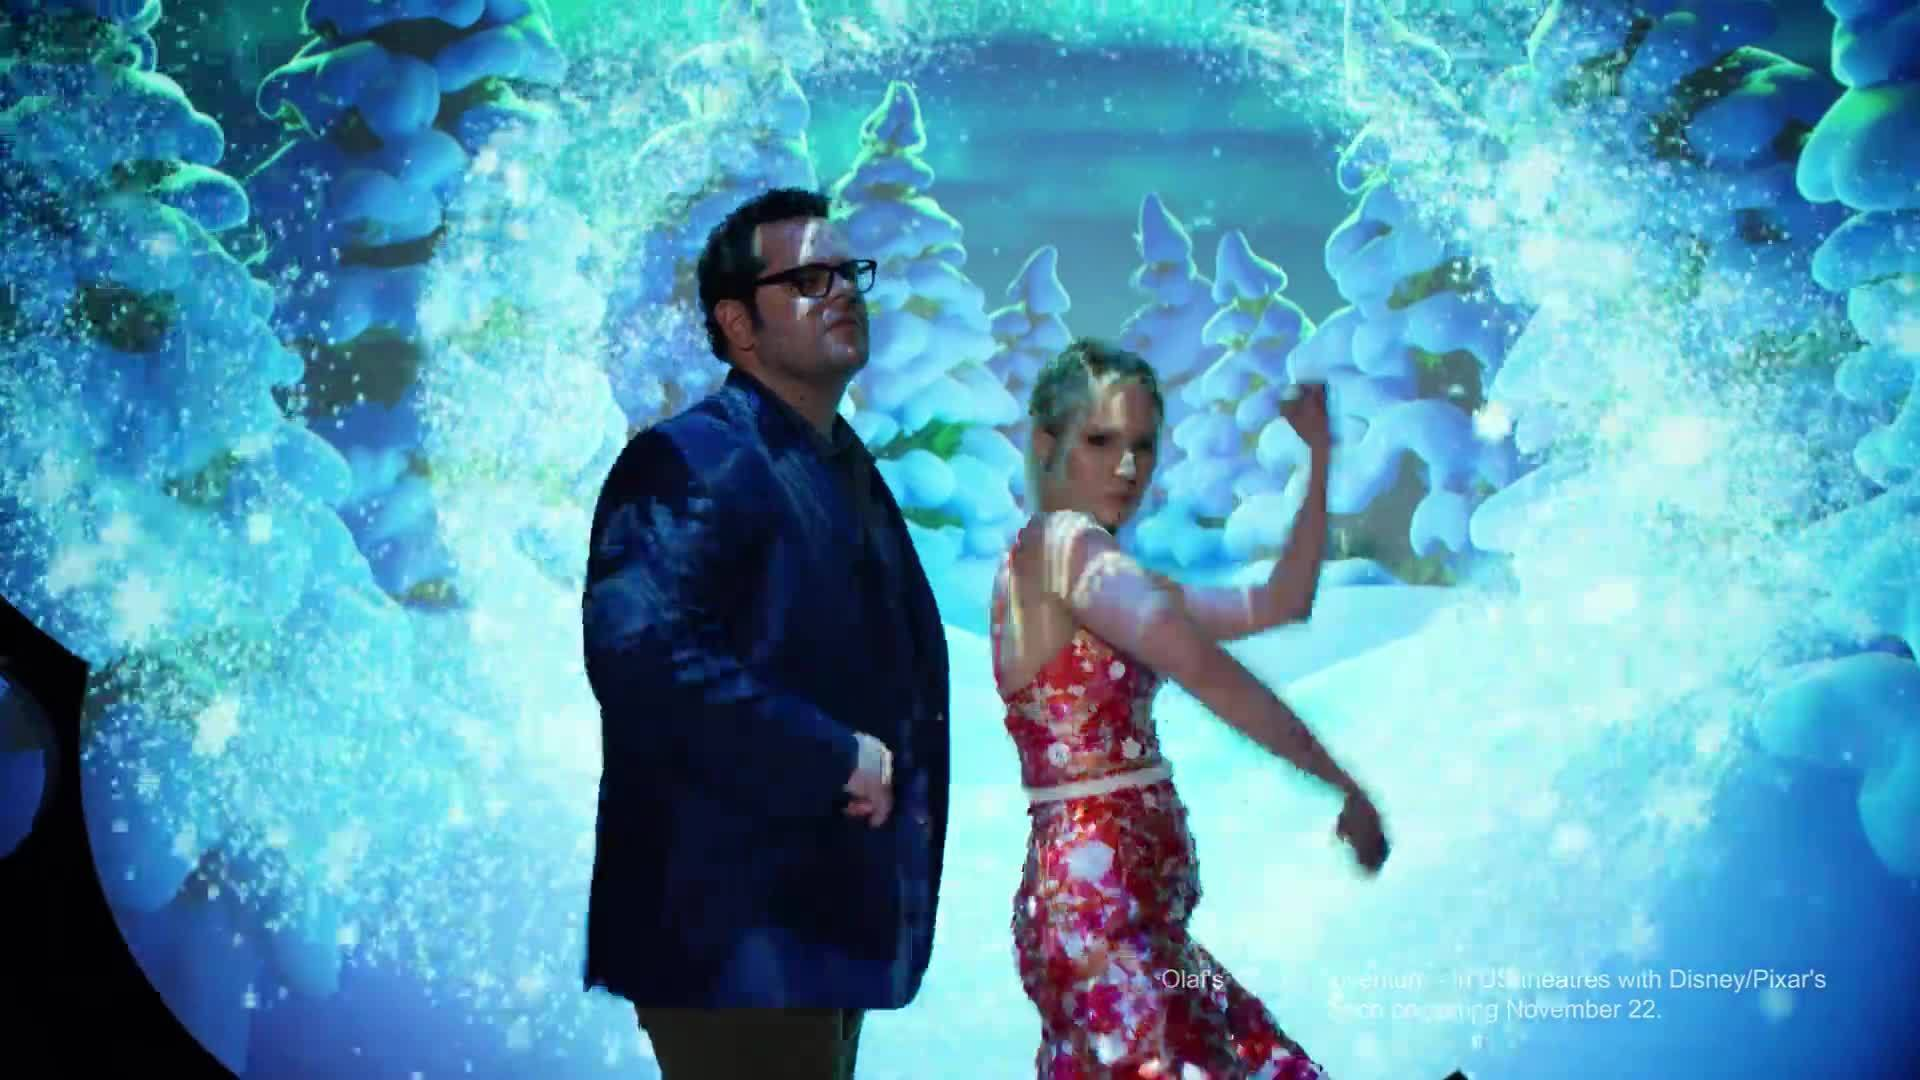 Olaf's Frozen Adventure - Kristen Bell and Josh Gad | D23 Expo